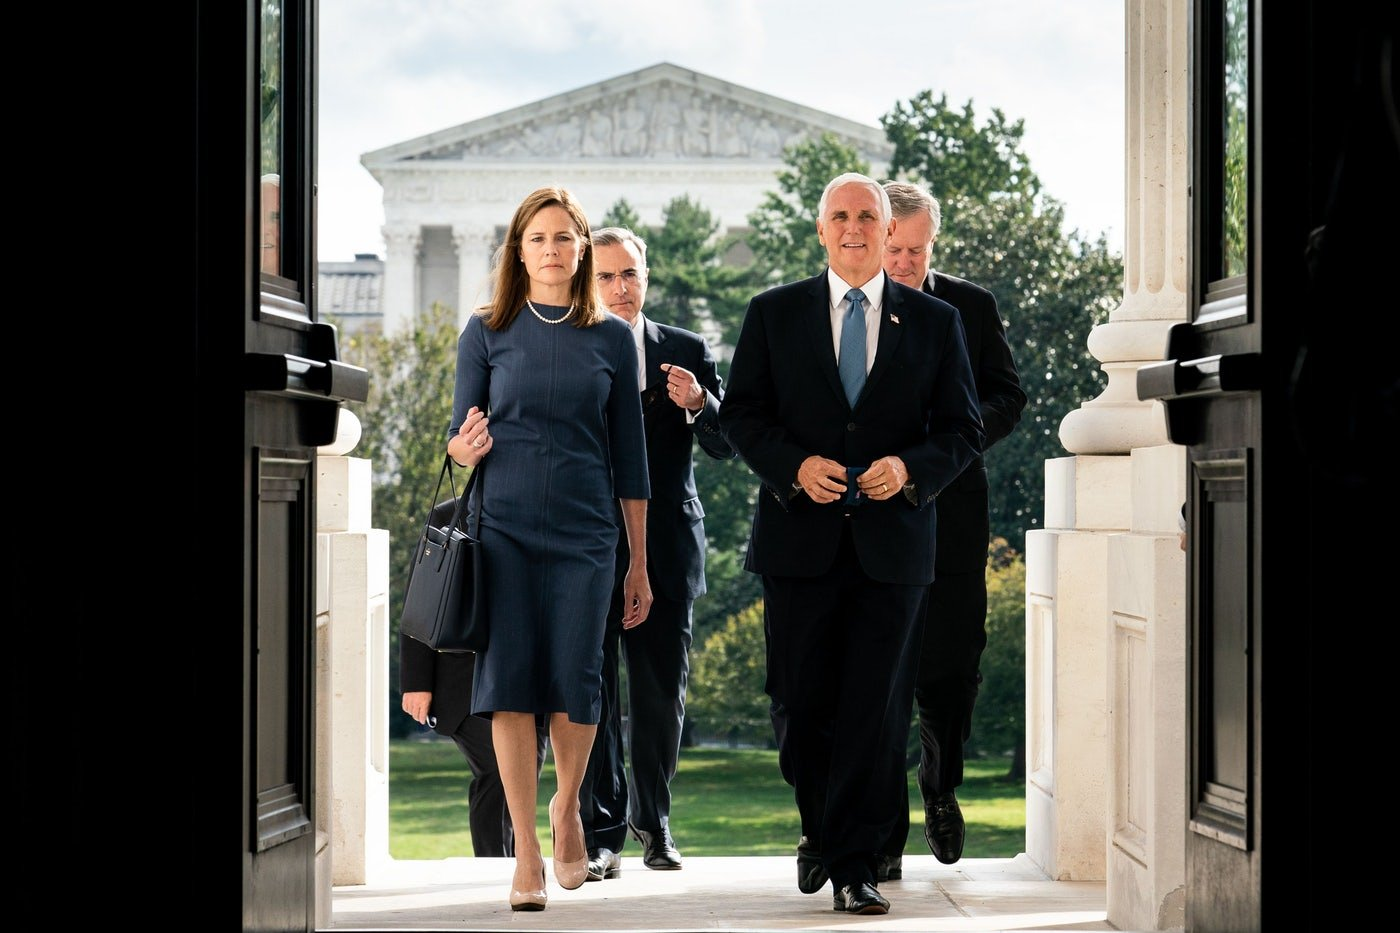 Judge Amy Coney Barrett, President Donald Trump's nominee to the Supreme Court and Vice President Mike Pence walk up the steps of the Capitol to meet with Senators in Washington, DC.